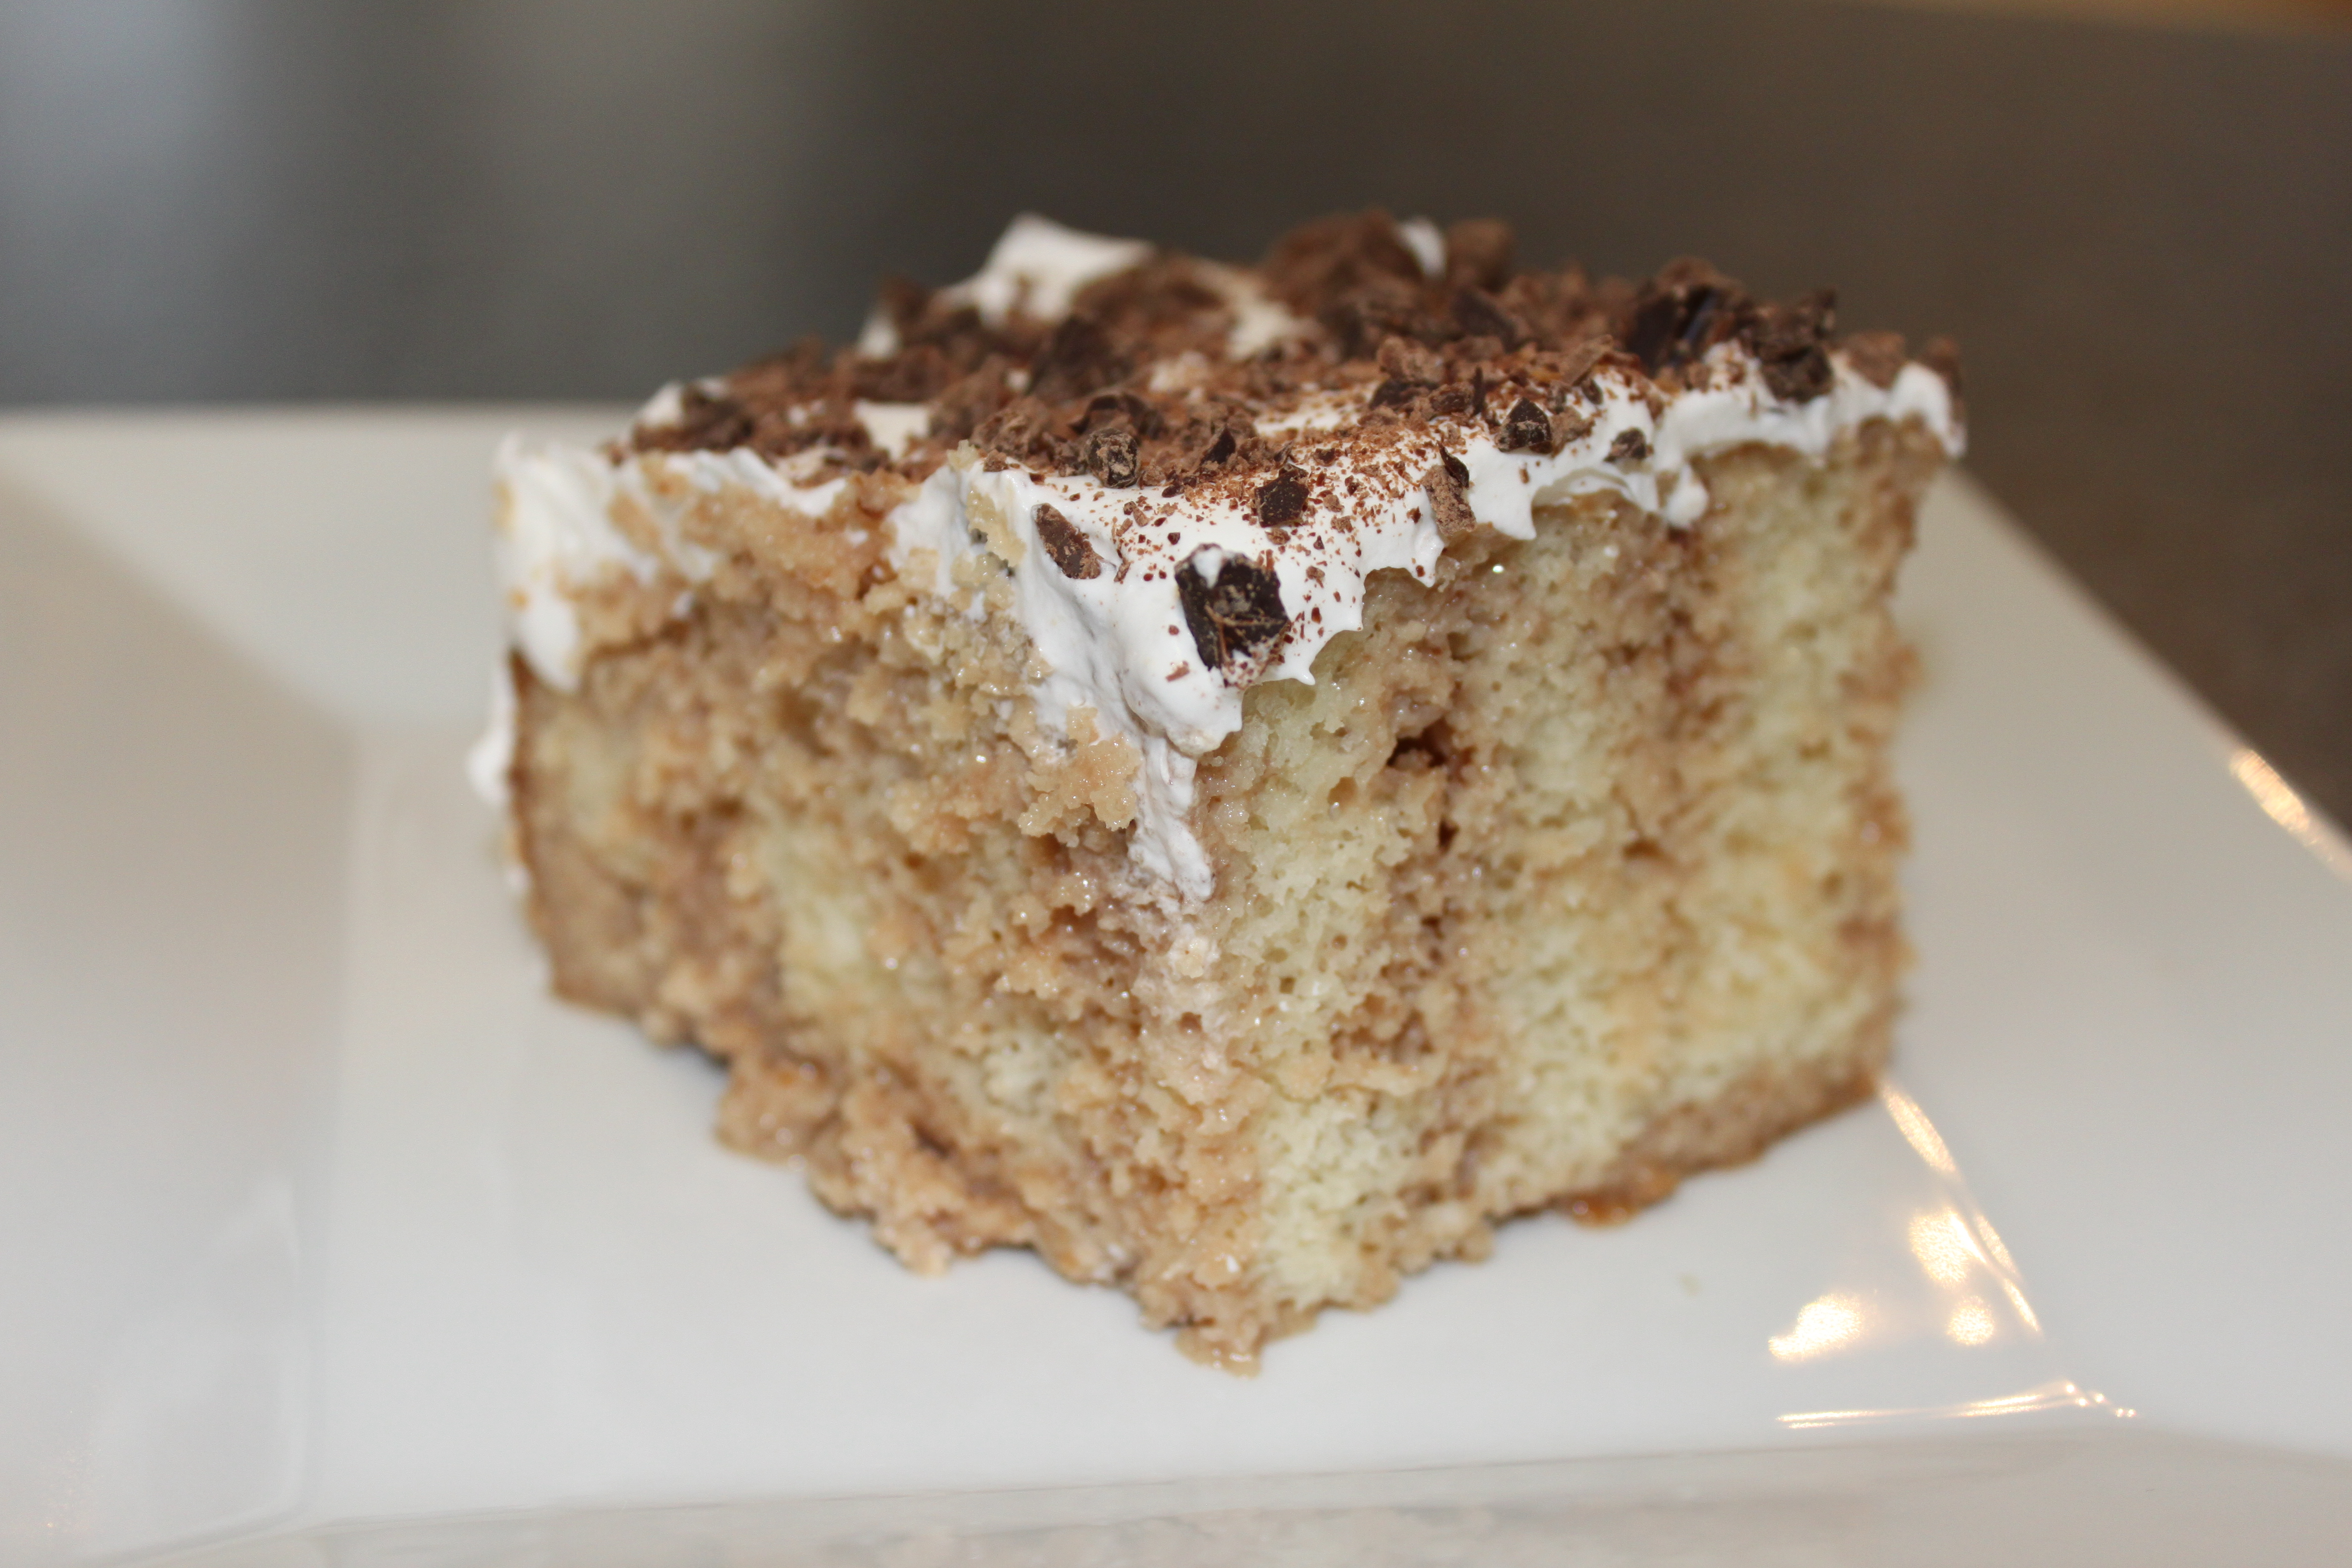 tres leches cake tres leches cake caribbean tres leches cake eggnog ...